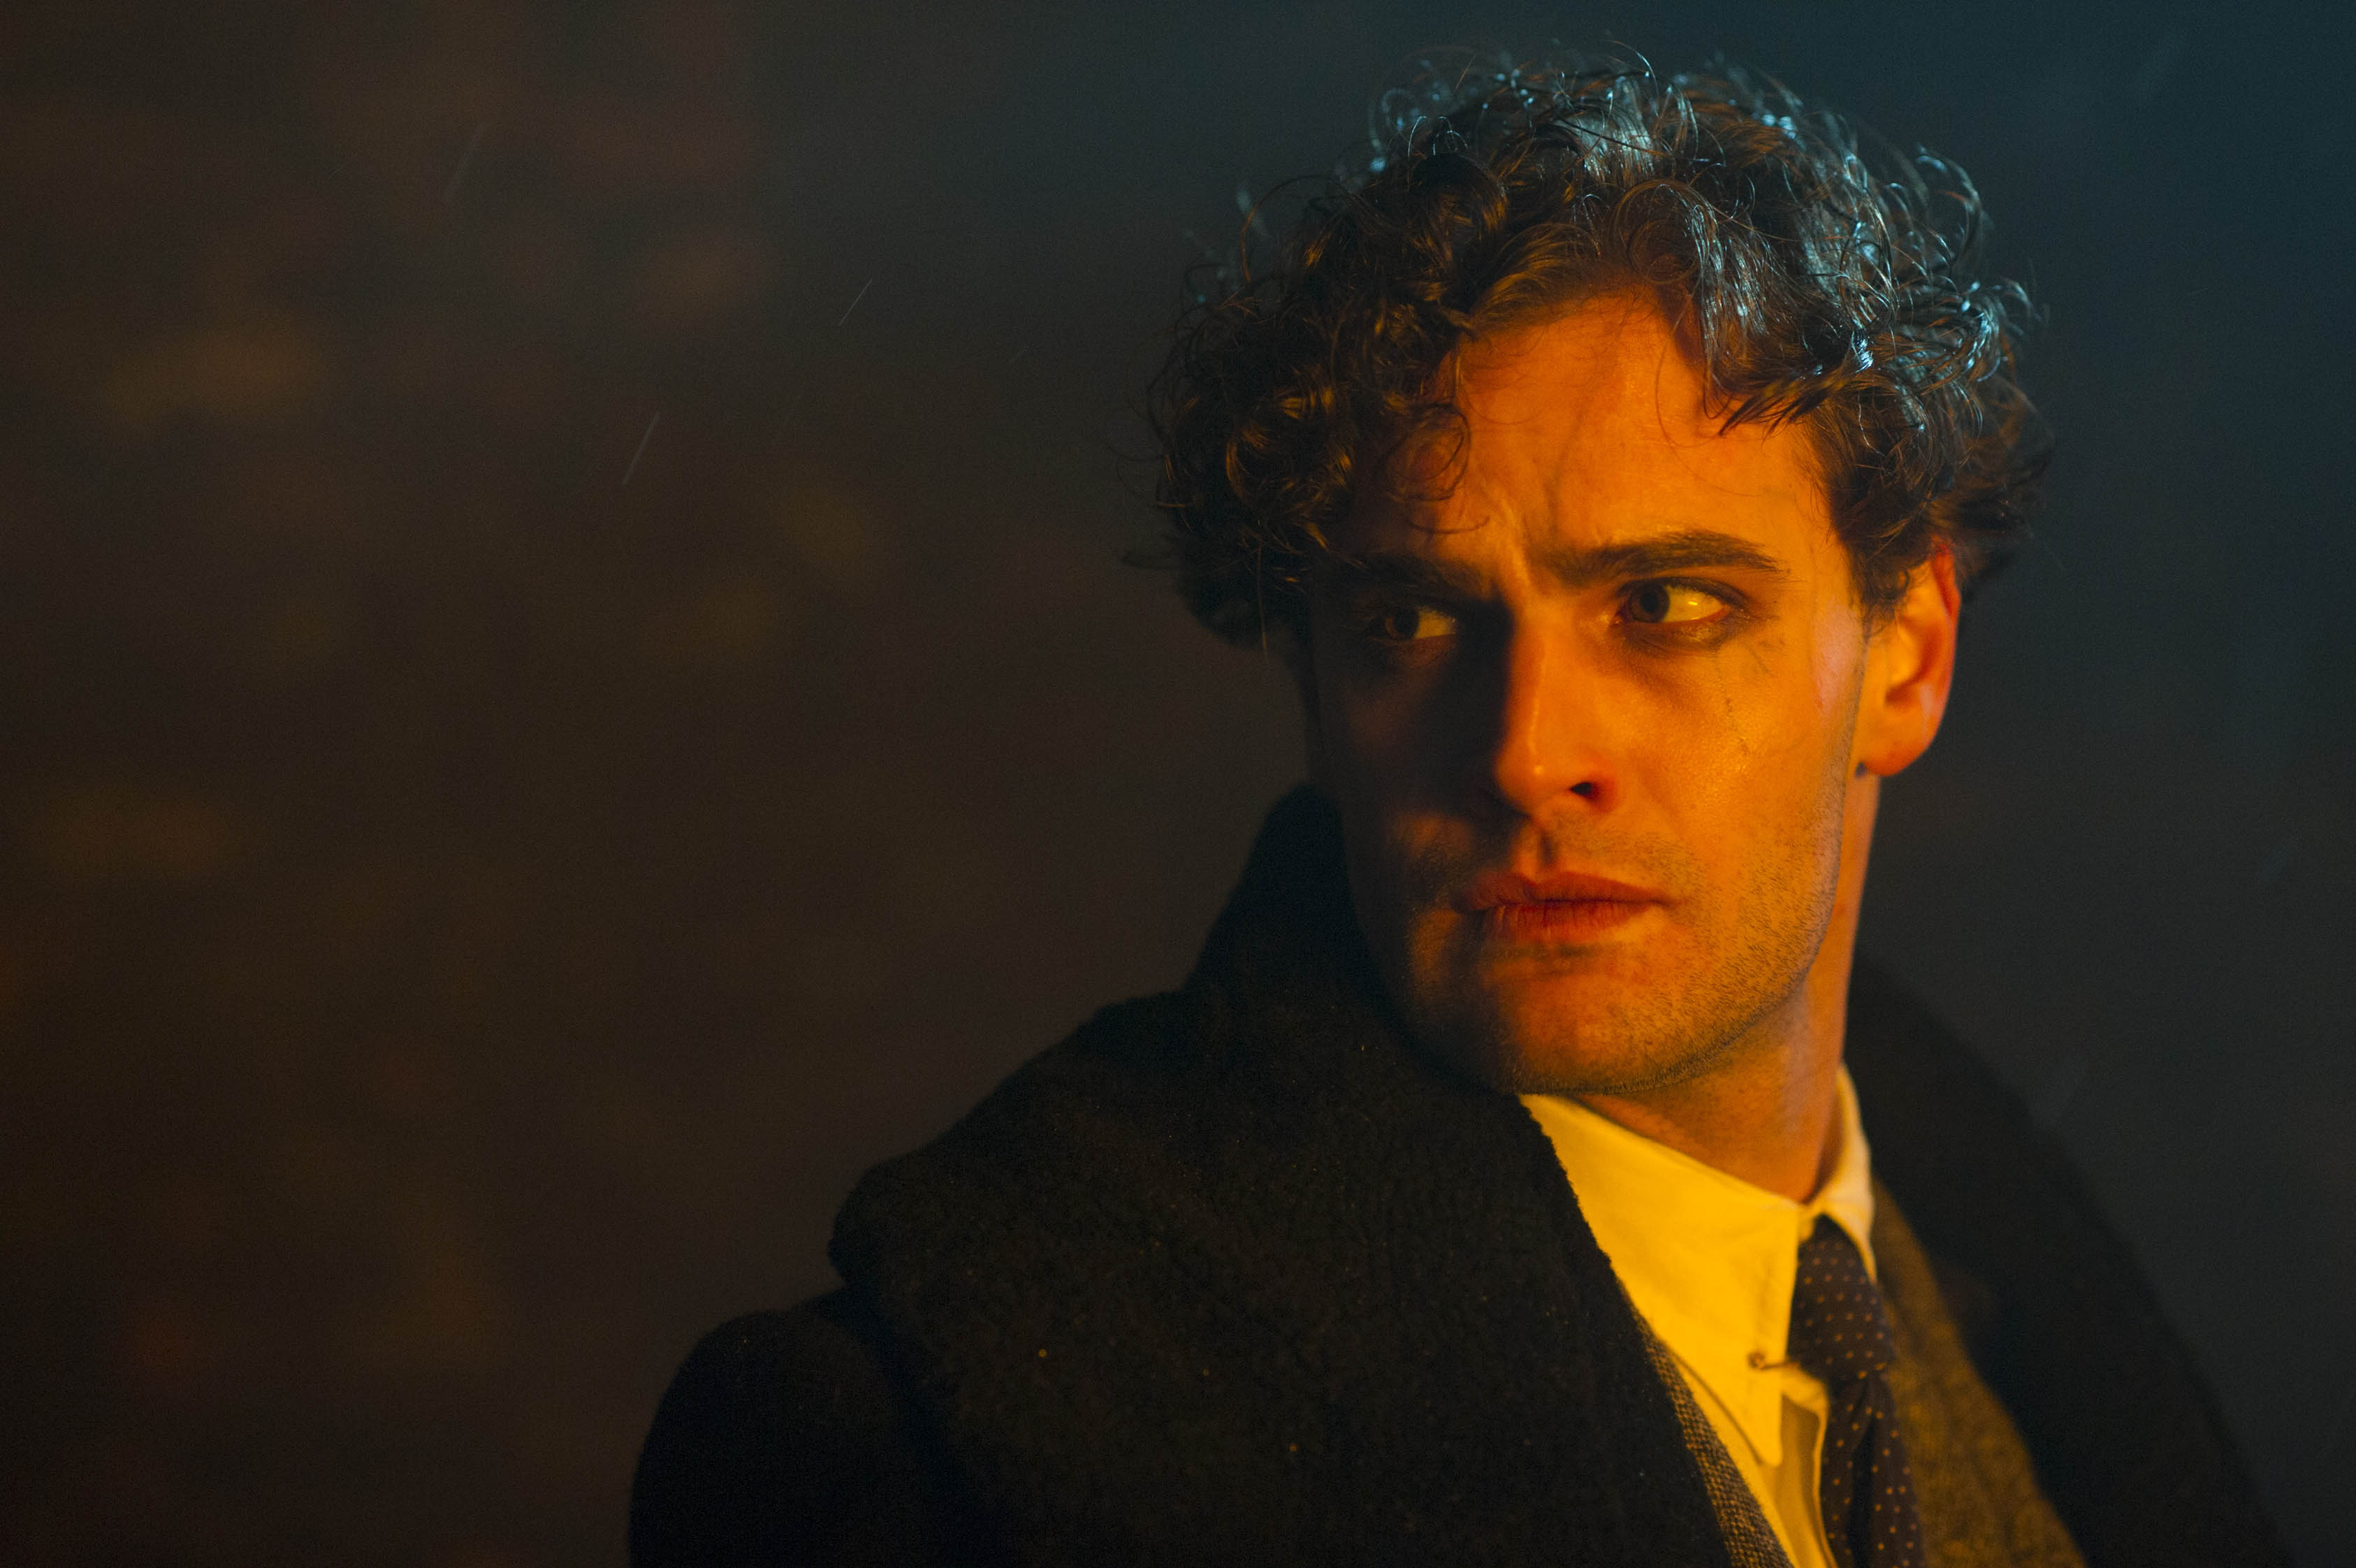 jekyll and hyde Hyde represents an unsuspected or hidden evil side to a person's character  jekyll and hyde are the primary characters in the 1886 story by robert louis.